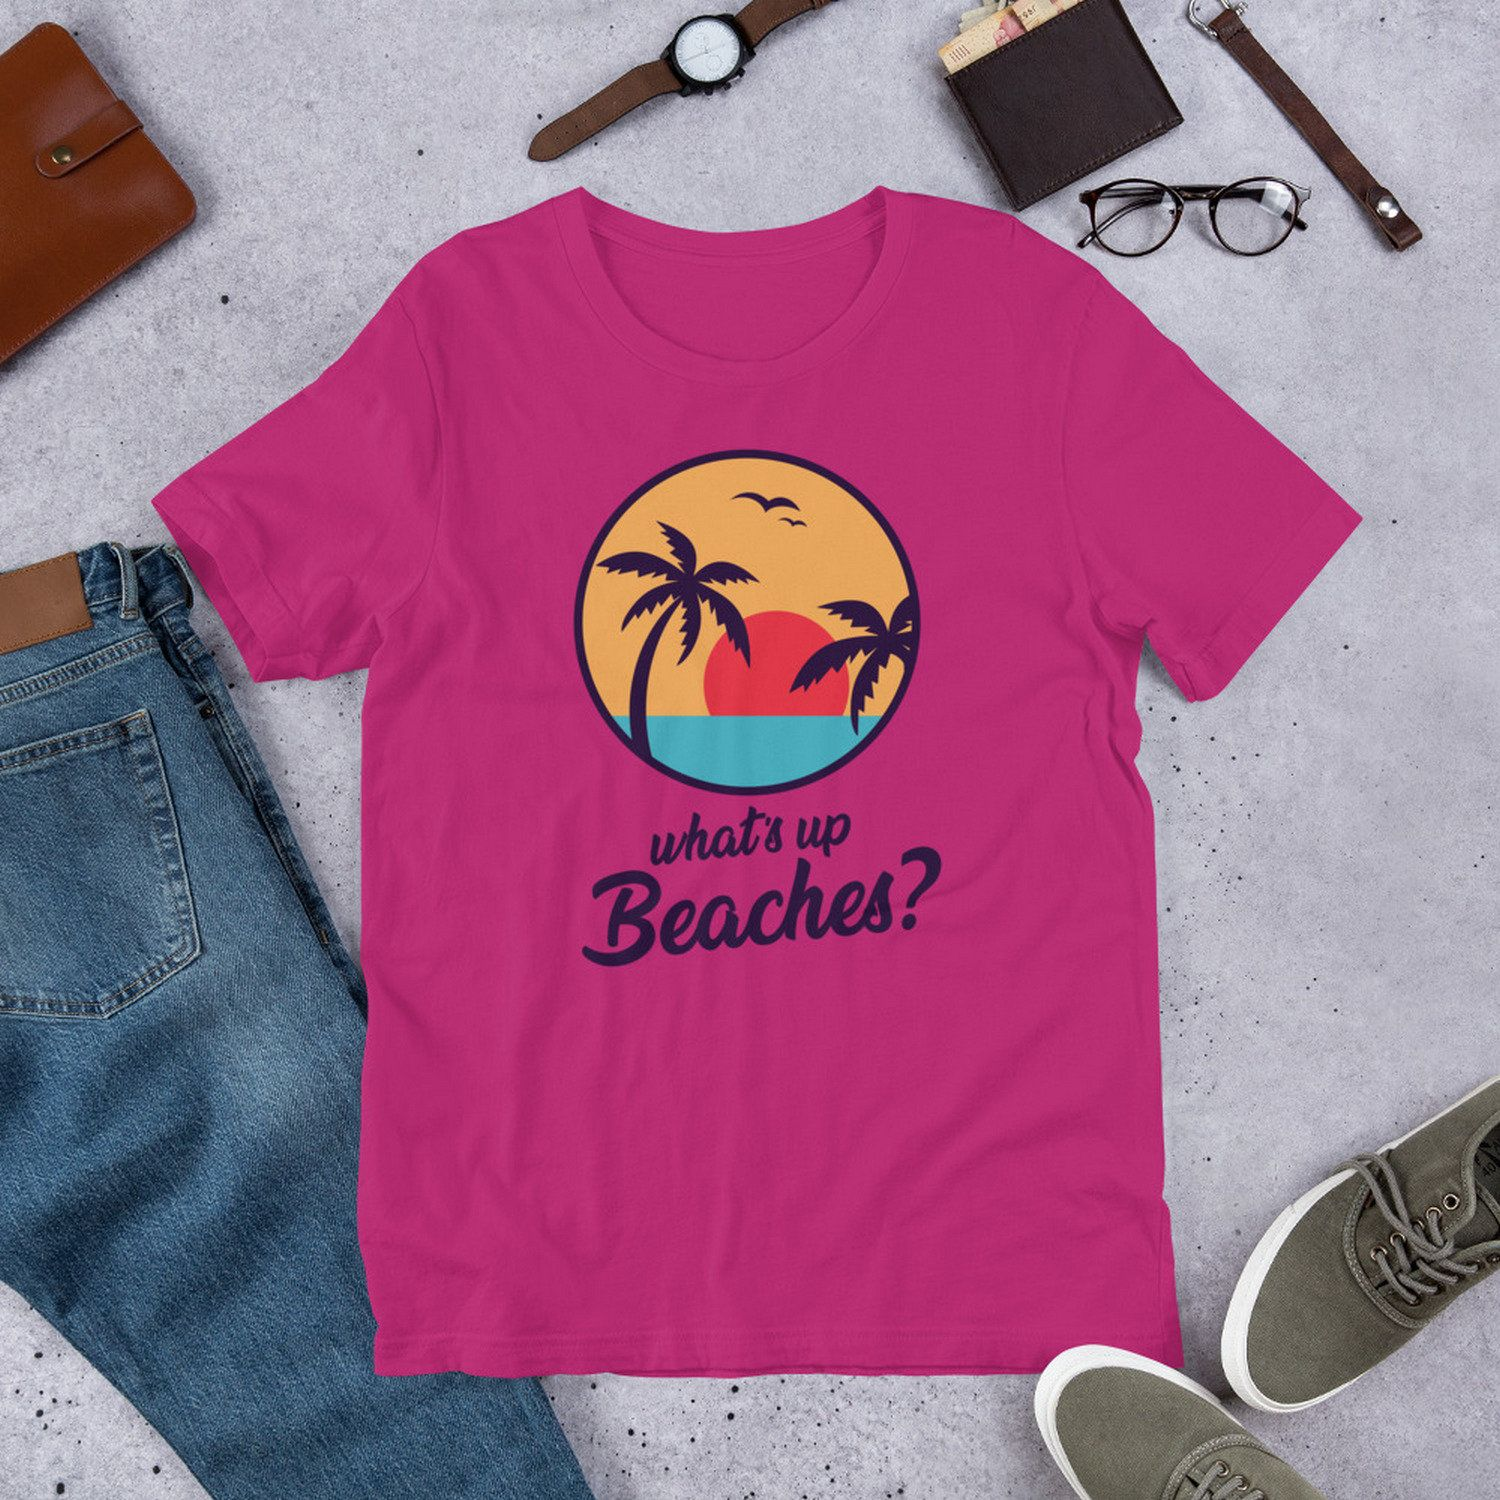 bc2a85e7 Whats Up Beaches Shirt - Brooklyn Nine Nine Funny TV Show Gifts - Brooklyn  99 Captain Holt Tees for Summer Holidays and Vacation - B99 Shirt